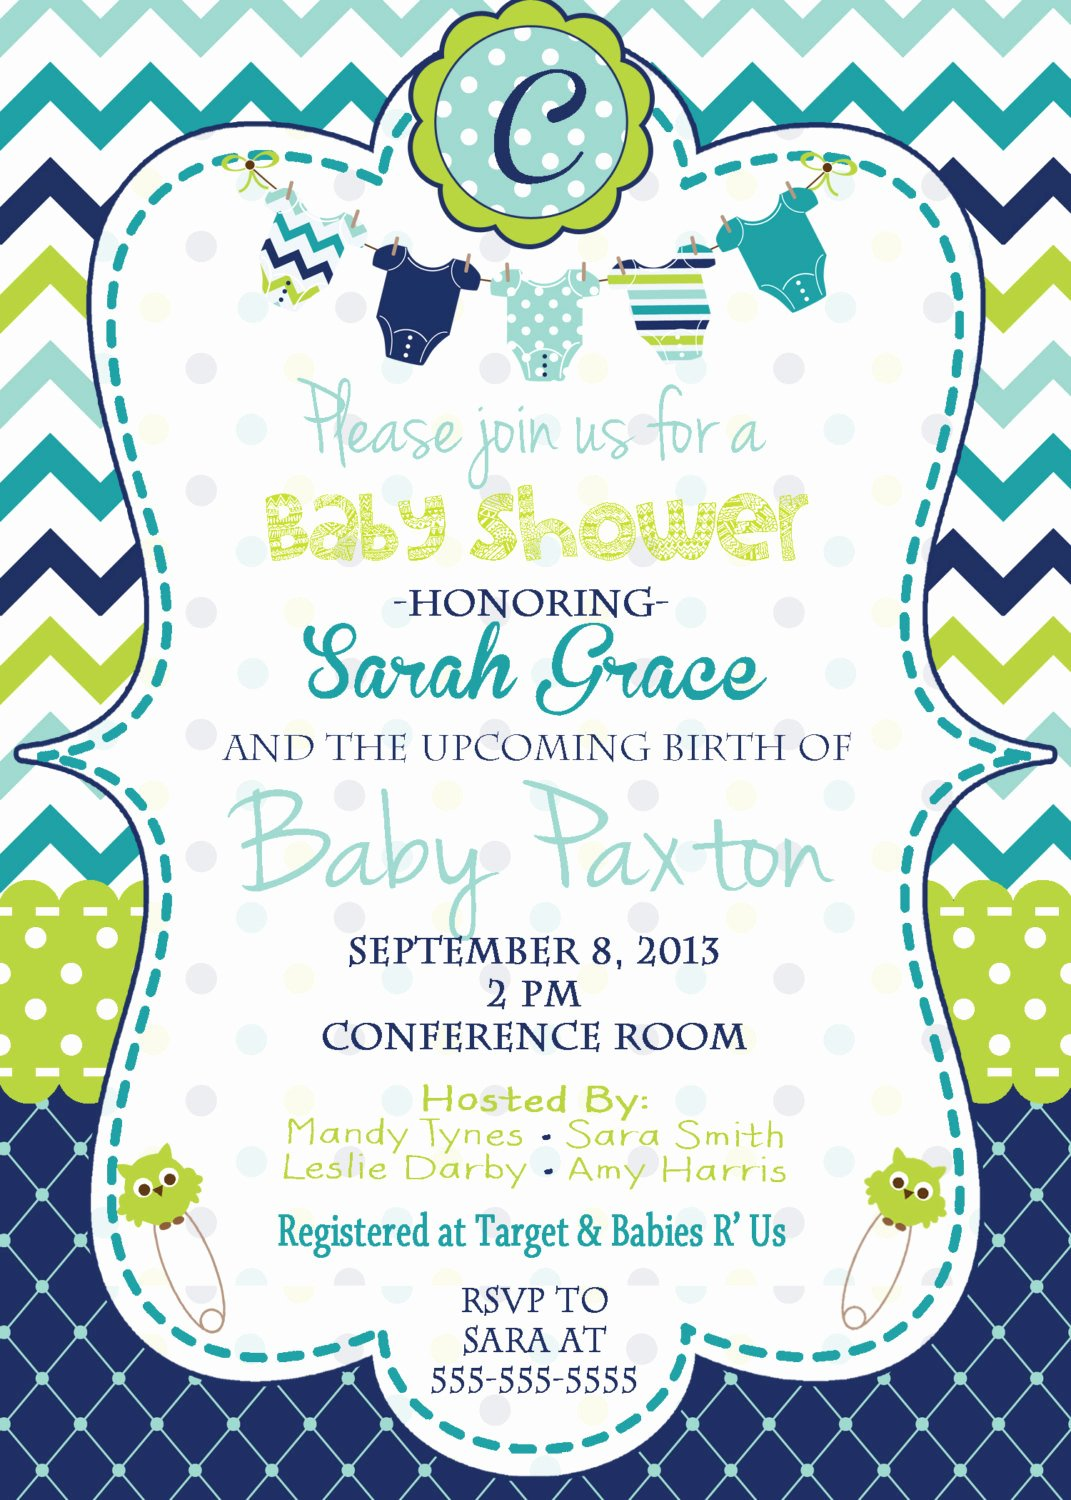 Baby Boy Invitations Free Lovely Baby Boy Baby Shower Invitation Baby Shower Invitation Blue